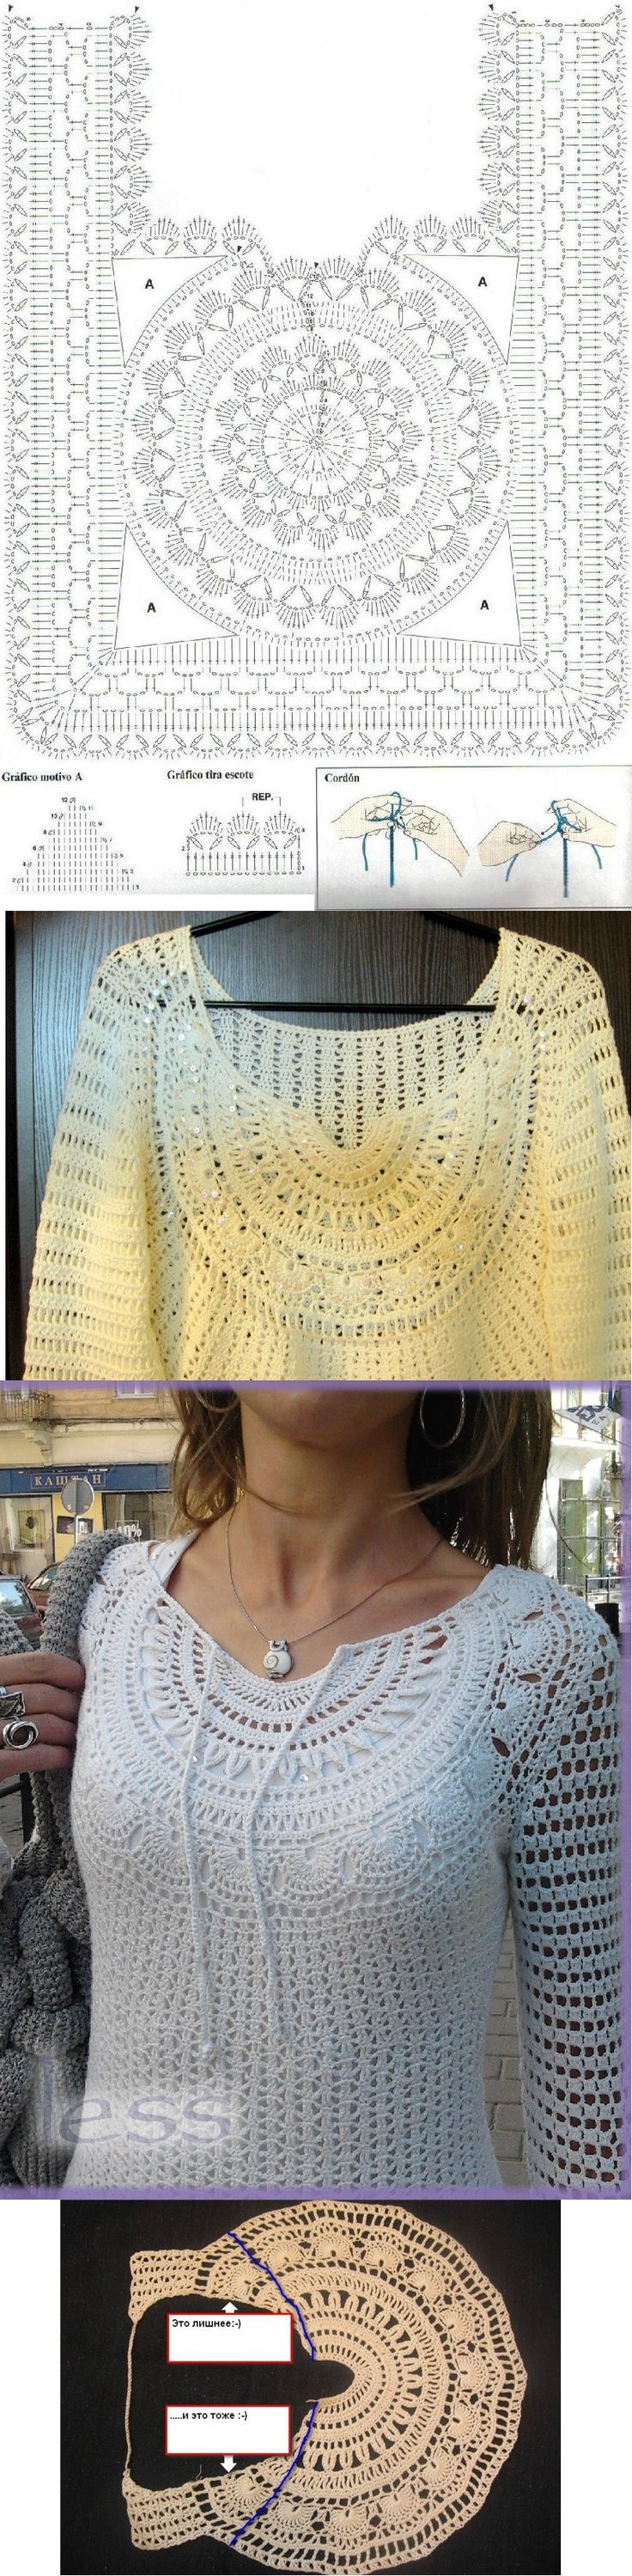 Stitch crochet pattern top women